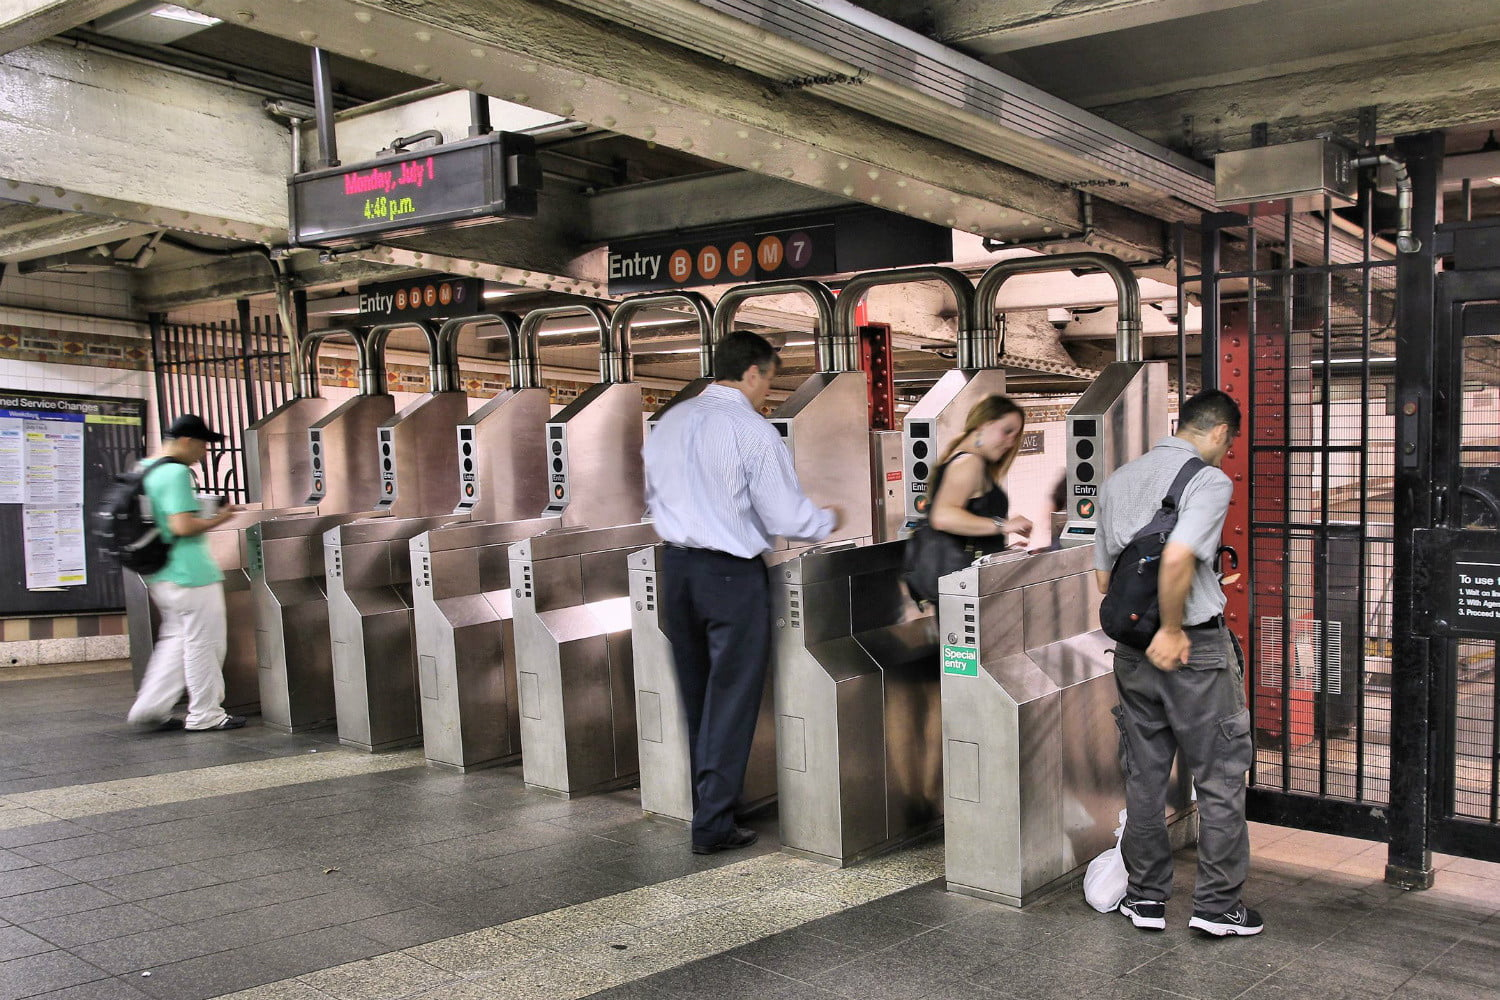 Contactless payments will roll out to more public transportation systems in 2020